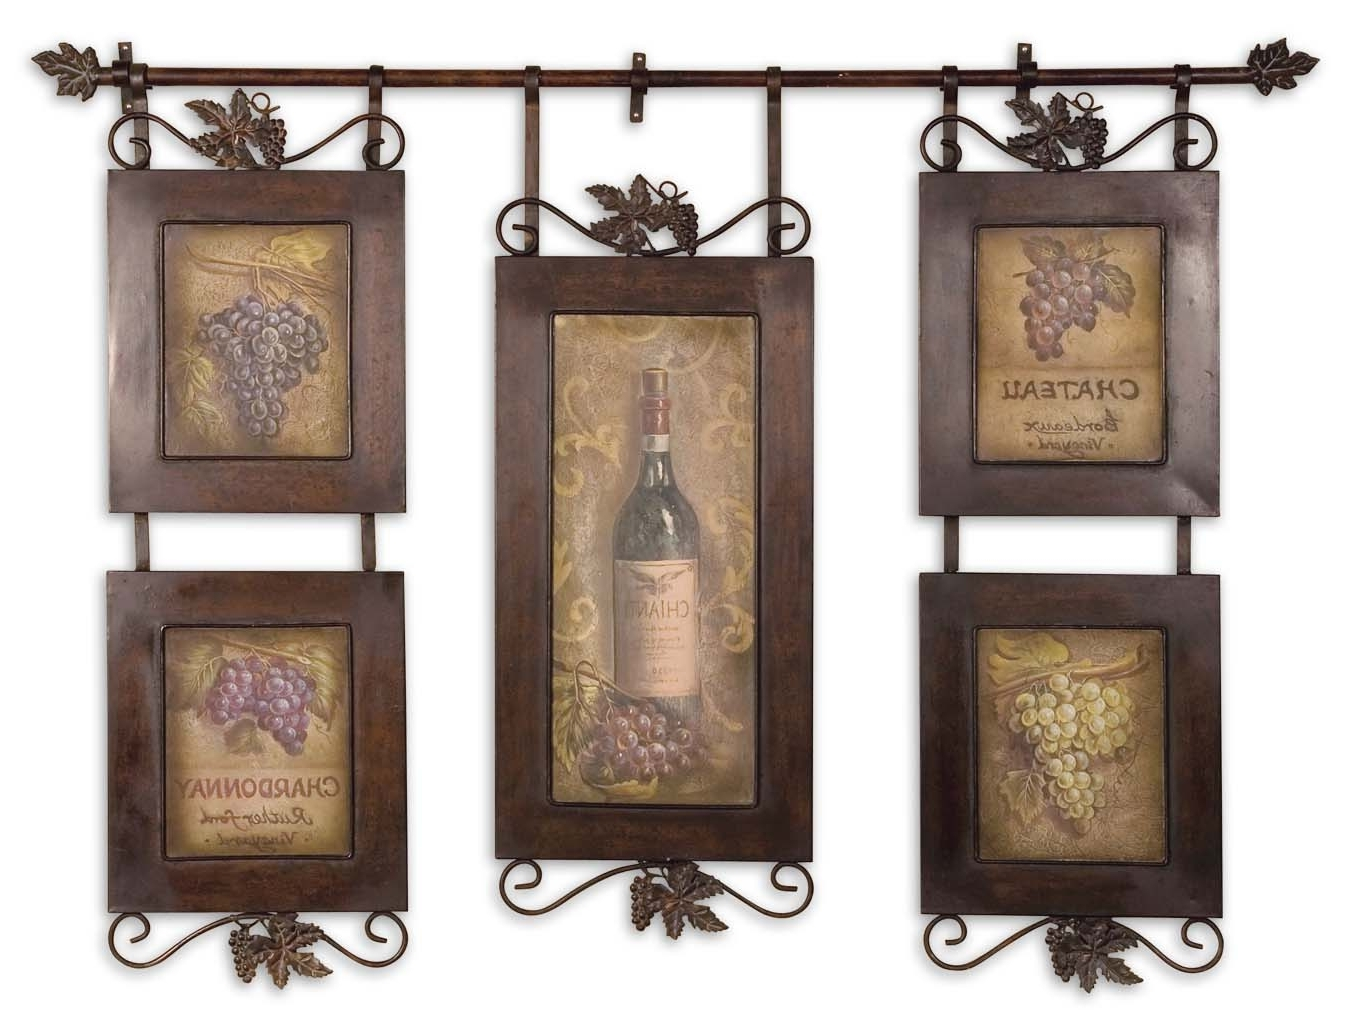 Uttermost Hanging Wine Framed Art 50791 Within Most Popular Framed Italian Wall Art (View 15 of 15)